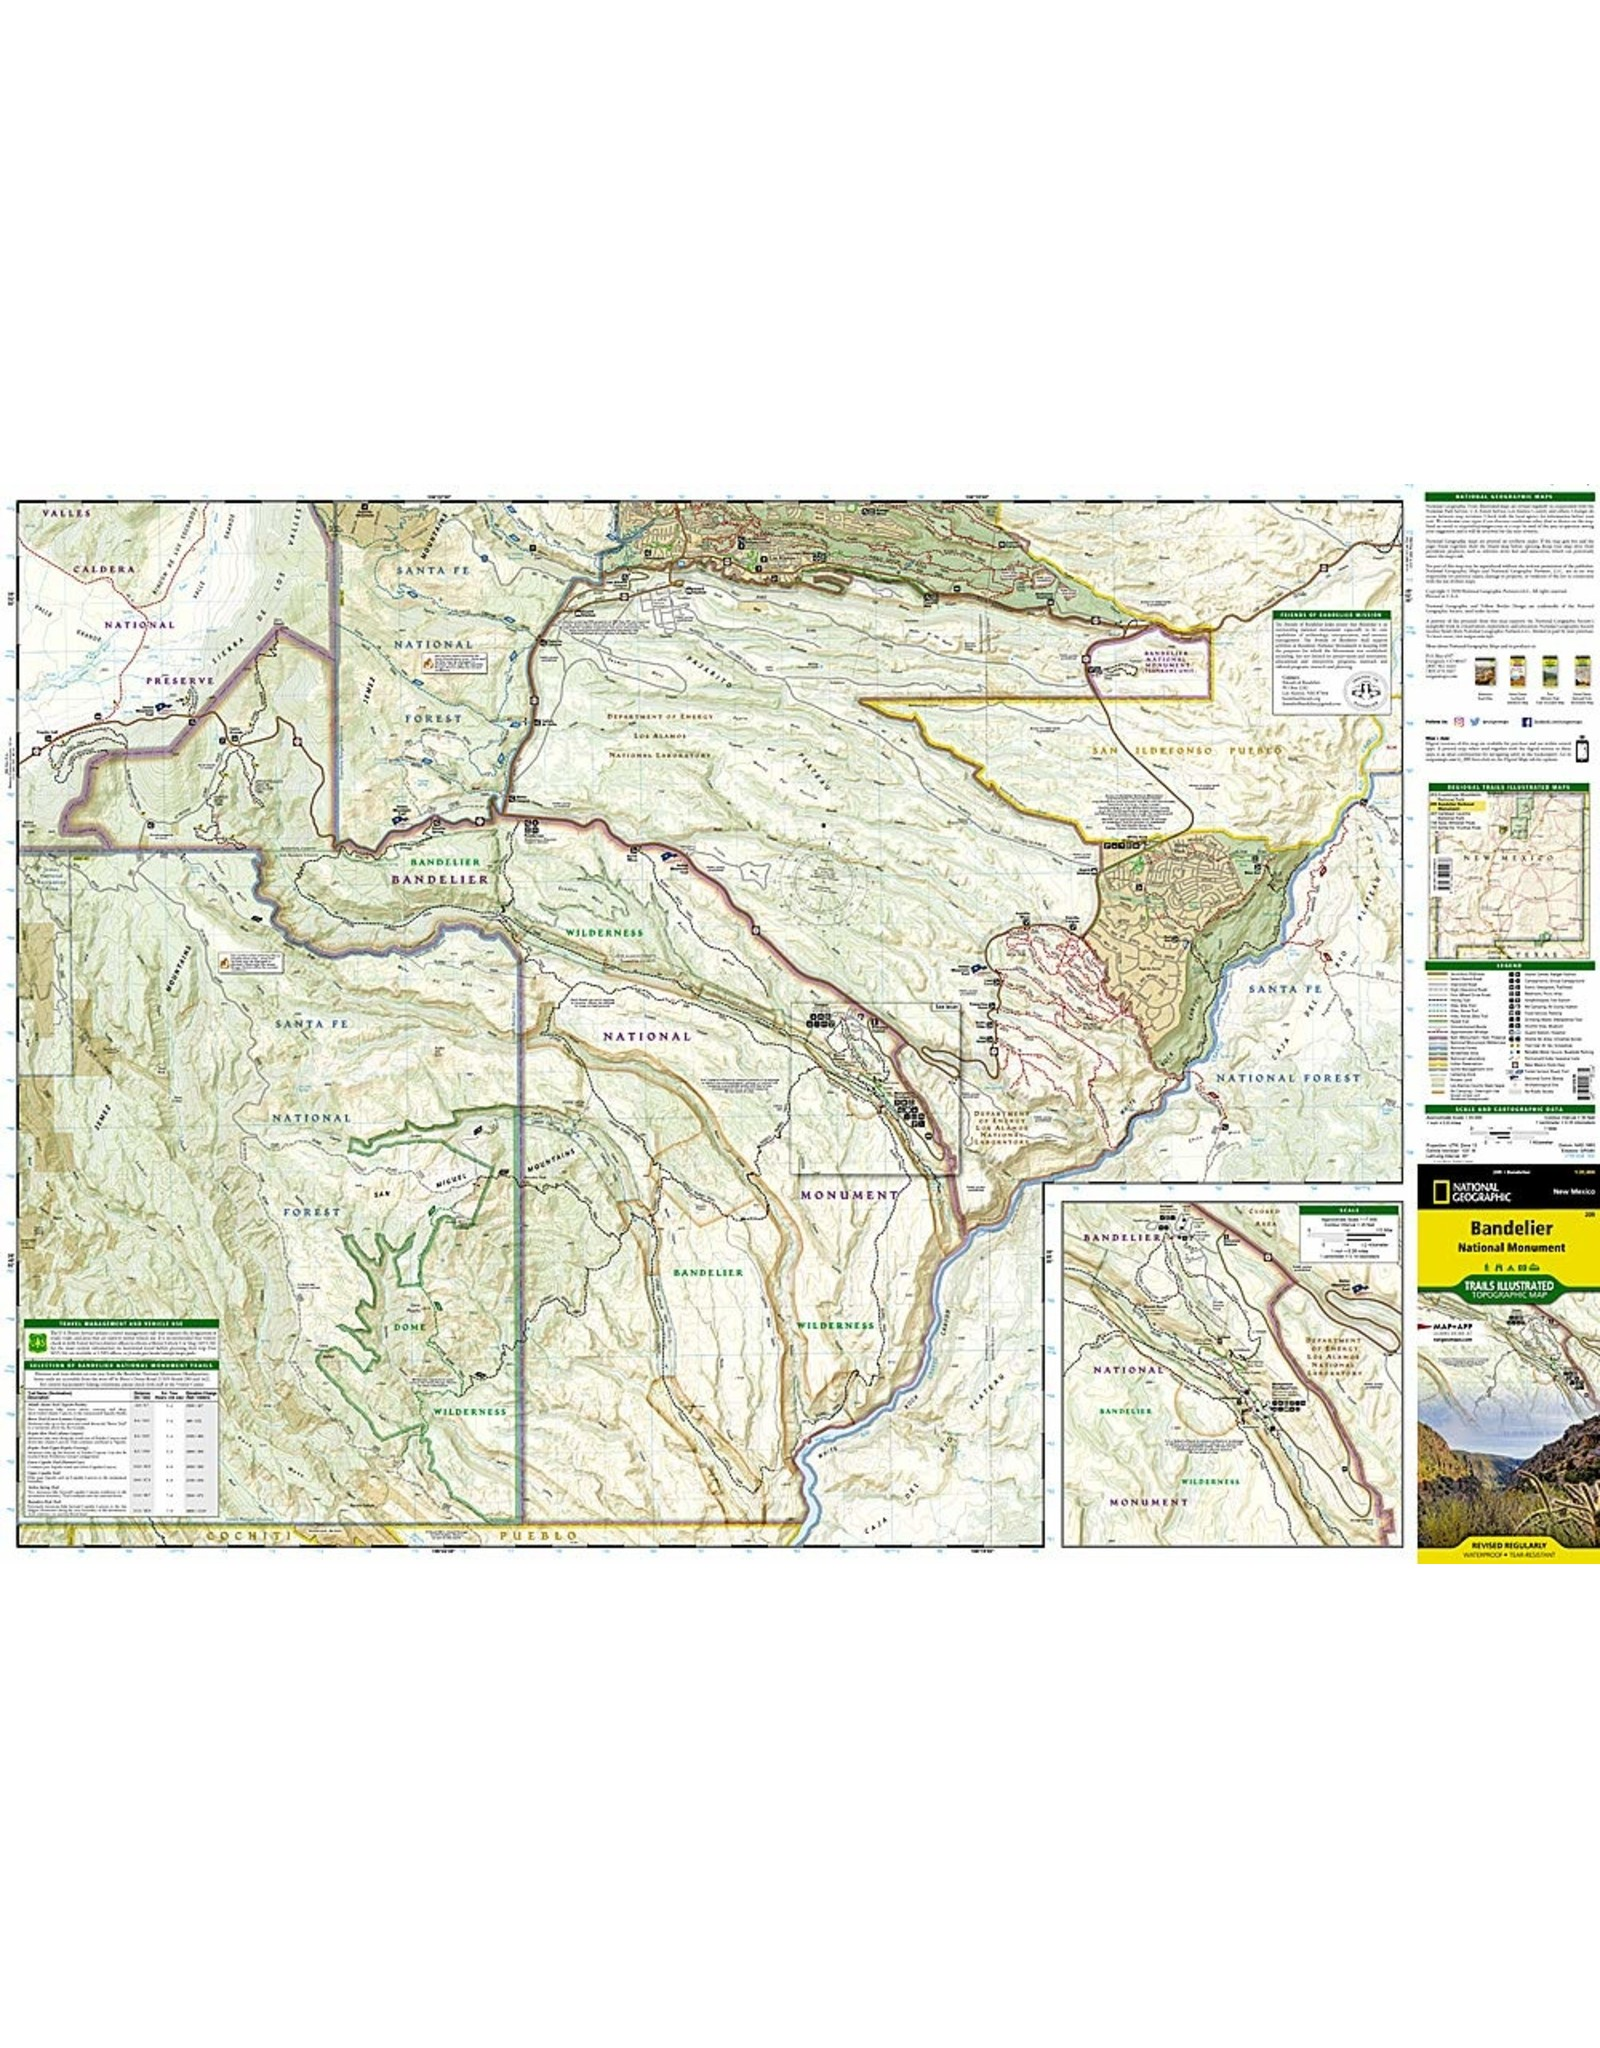 Nat Geo Bandelier National Monument (National Geographic Trails Illustrated Map, 209) Map – Illustrated